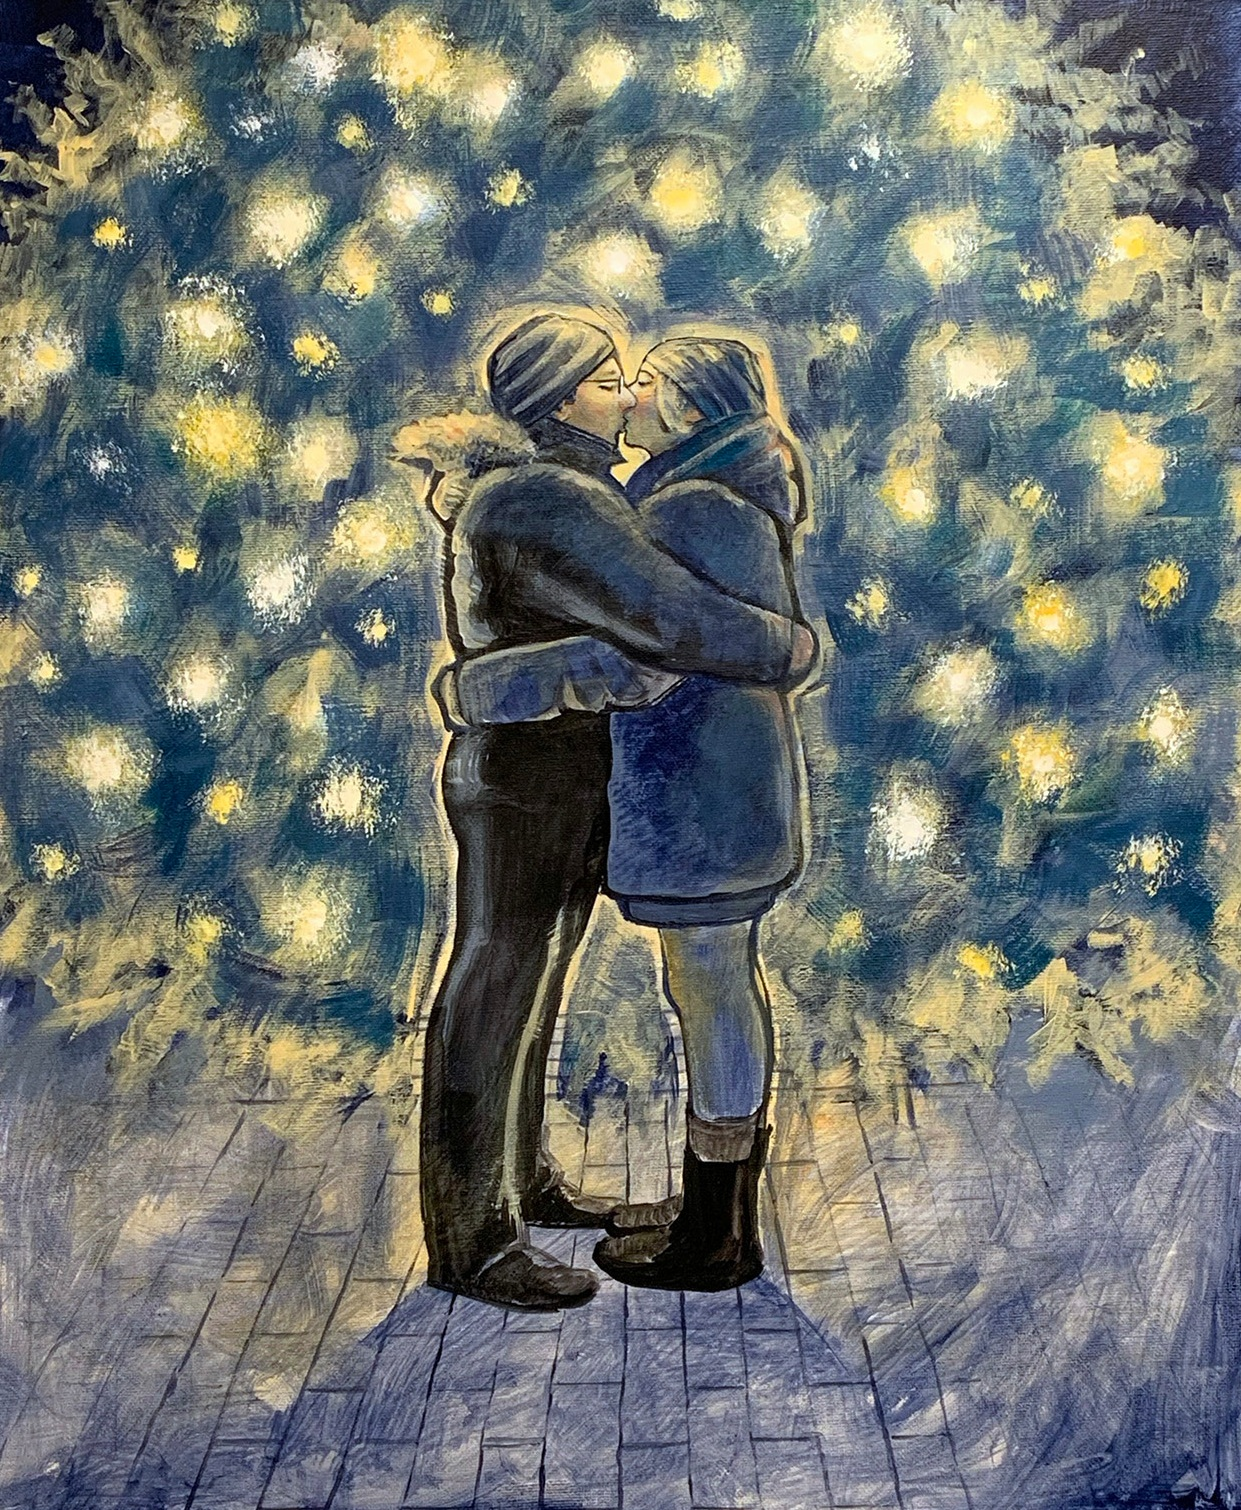 Wedding Anniversary Portrait (2018)